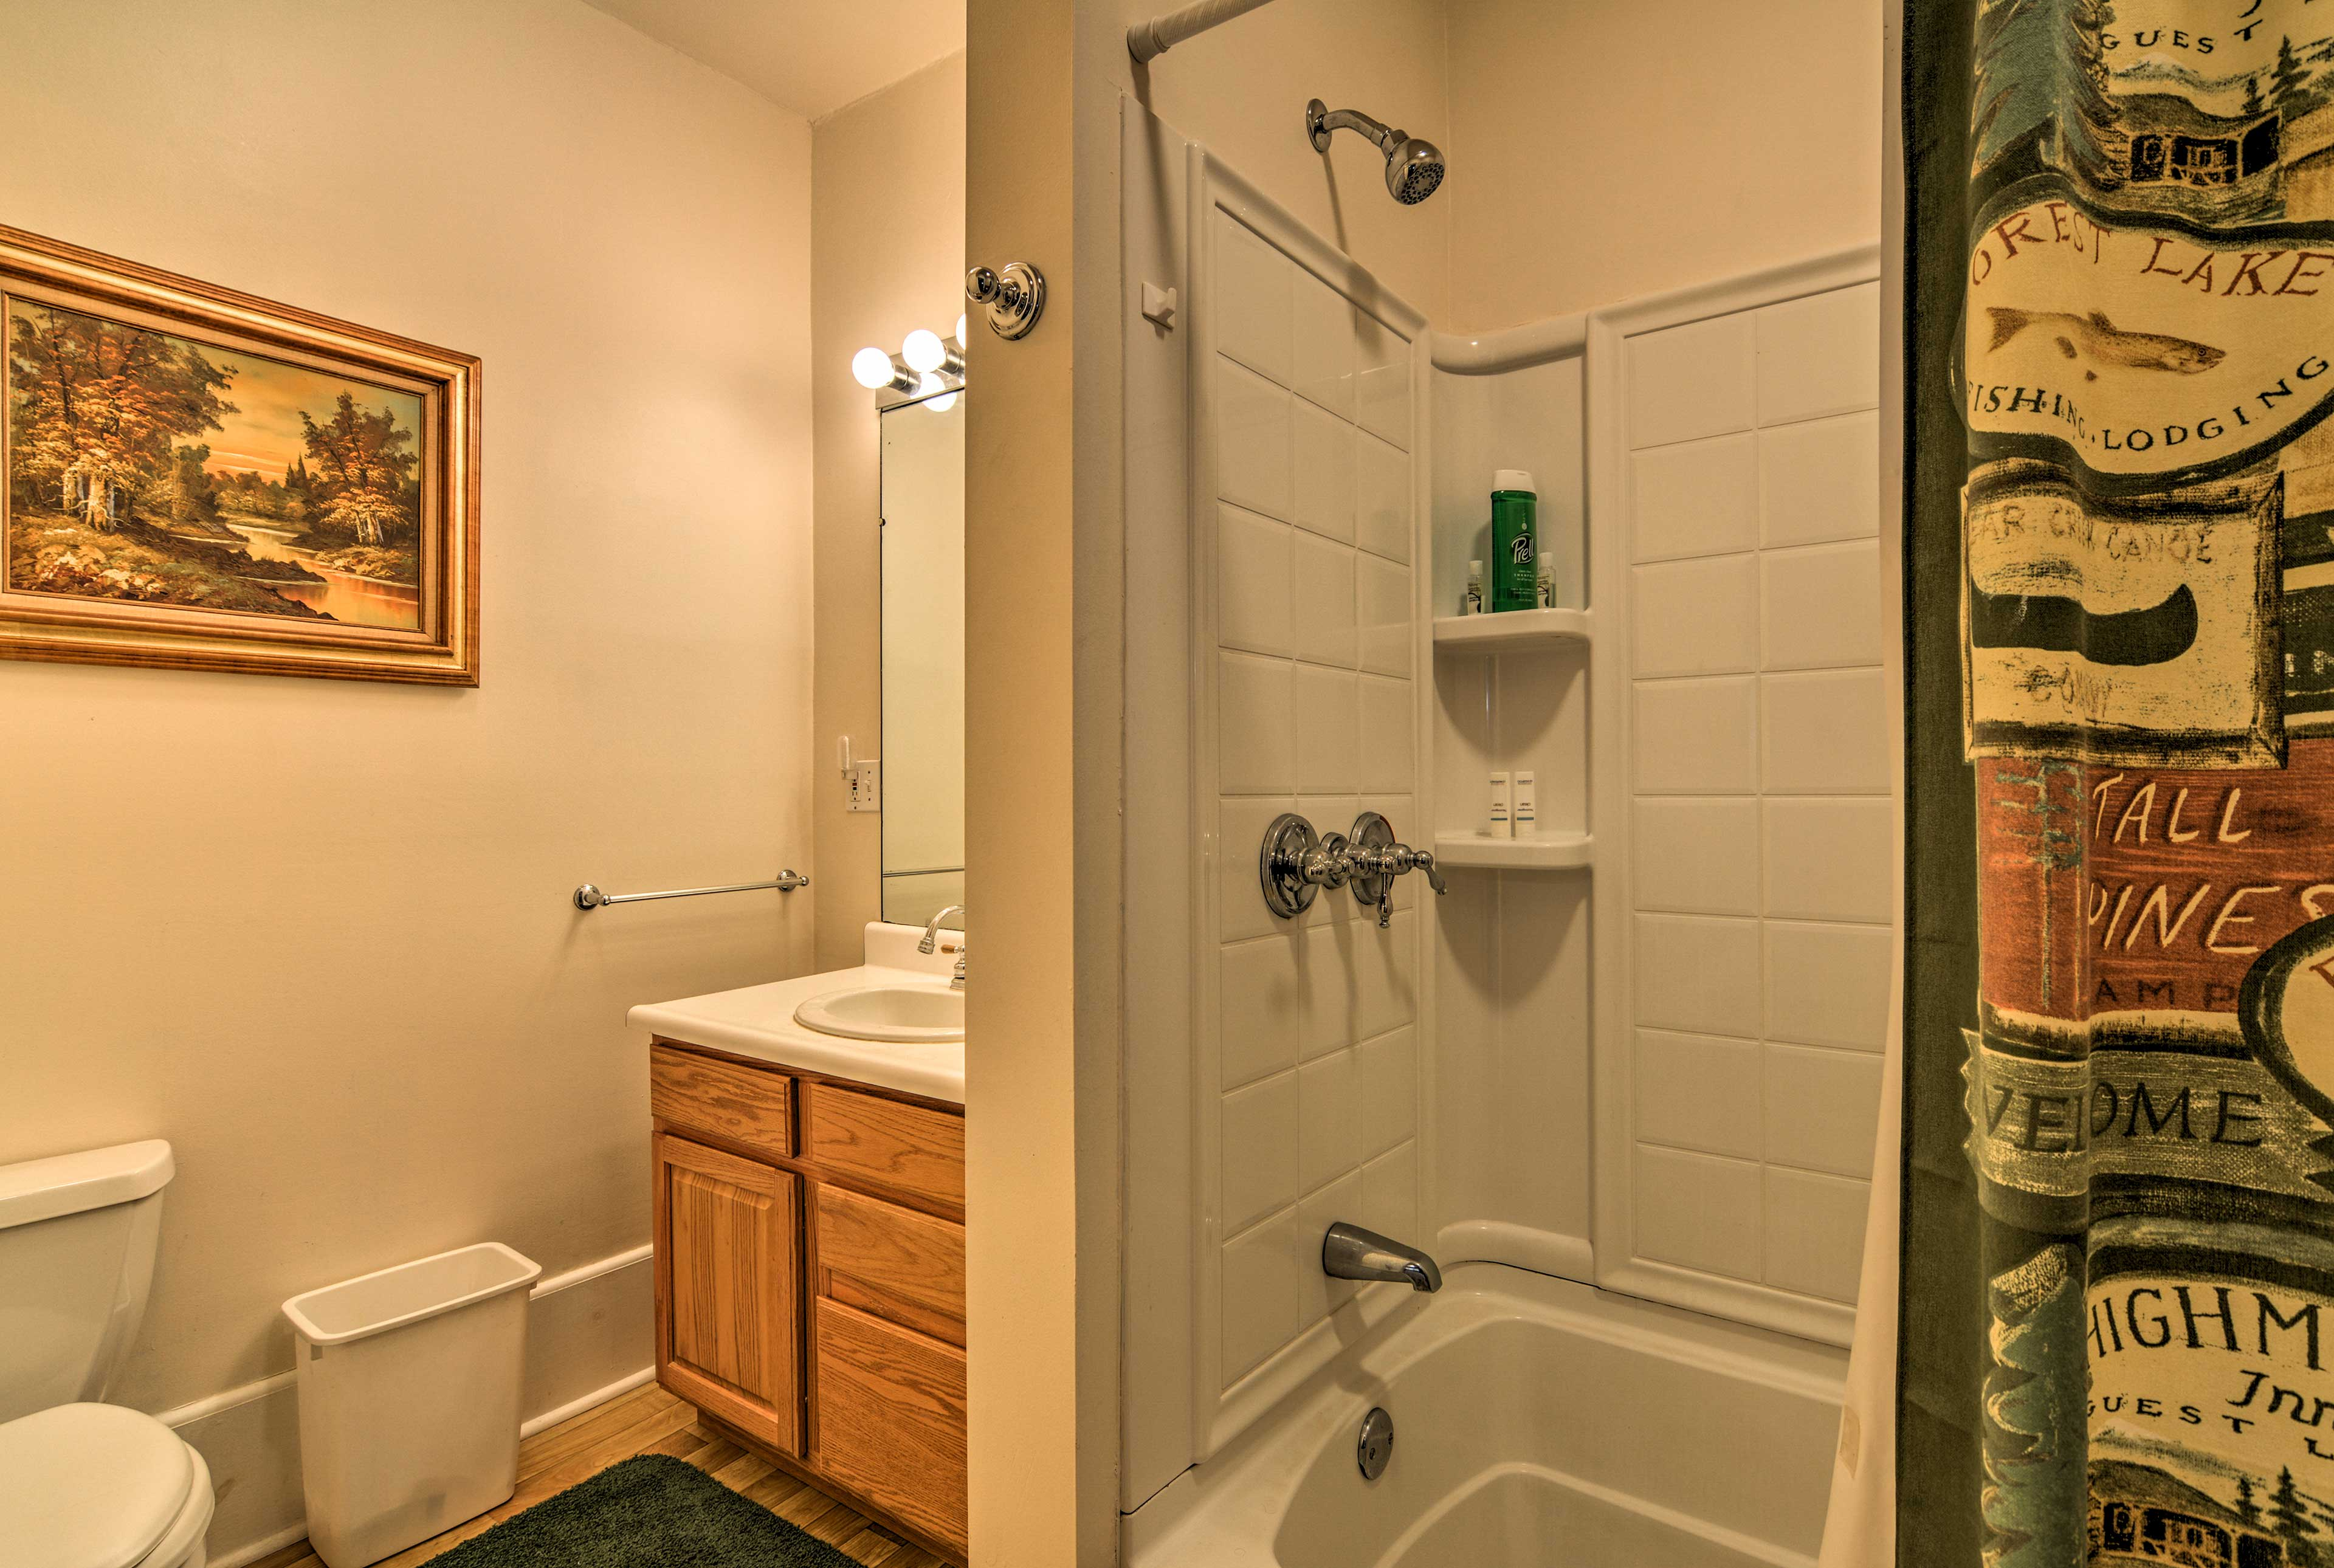 With 4 bathrooms, everyone will have space to get ready each morning.